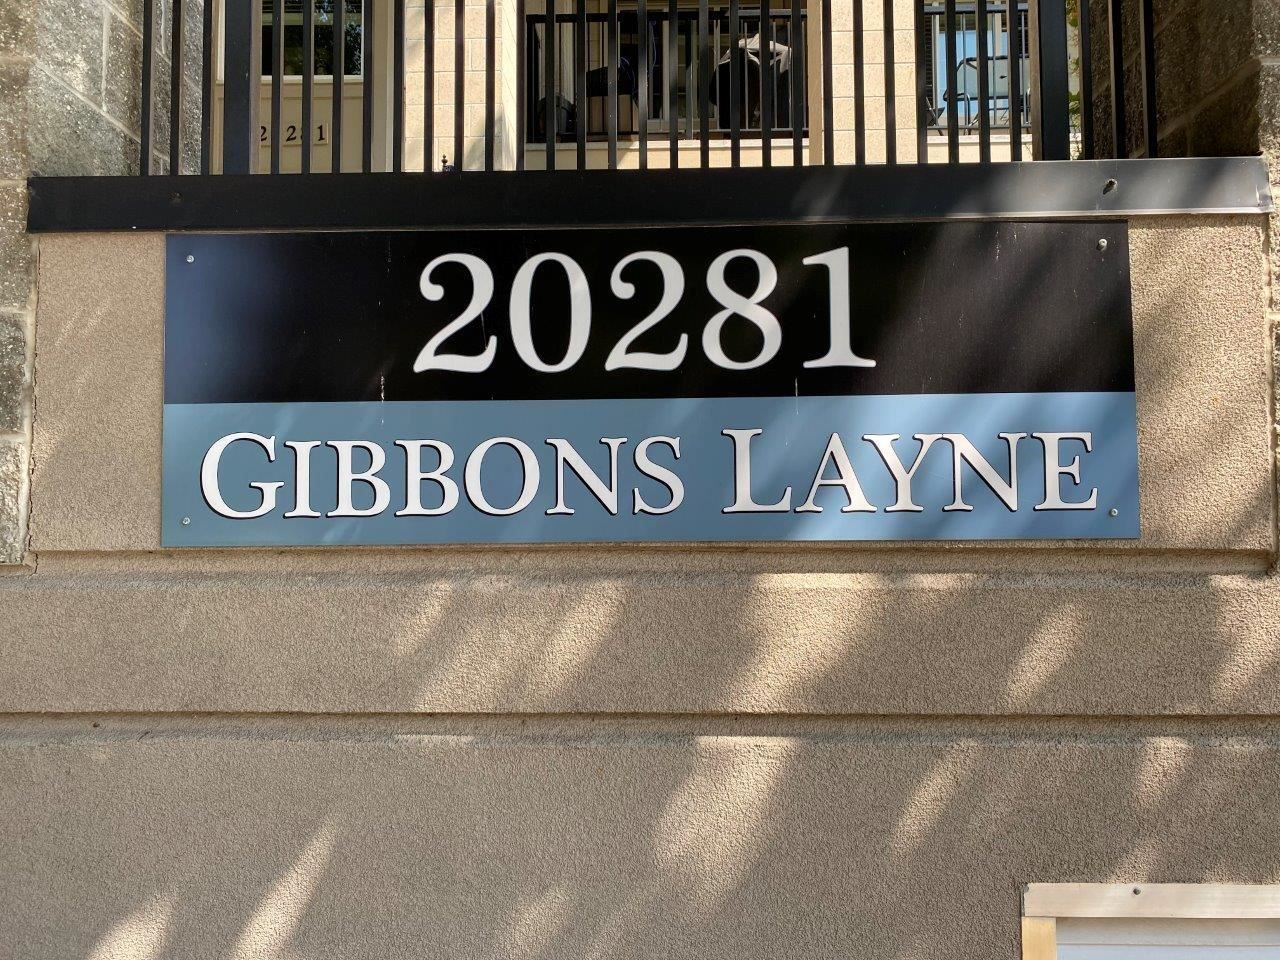 """Main Photo: 203 20281 53A Avenue in Langley: Langley City Condo for sale in """"GIBBONS LAYNE"""" : MLS®# R2601988"""